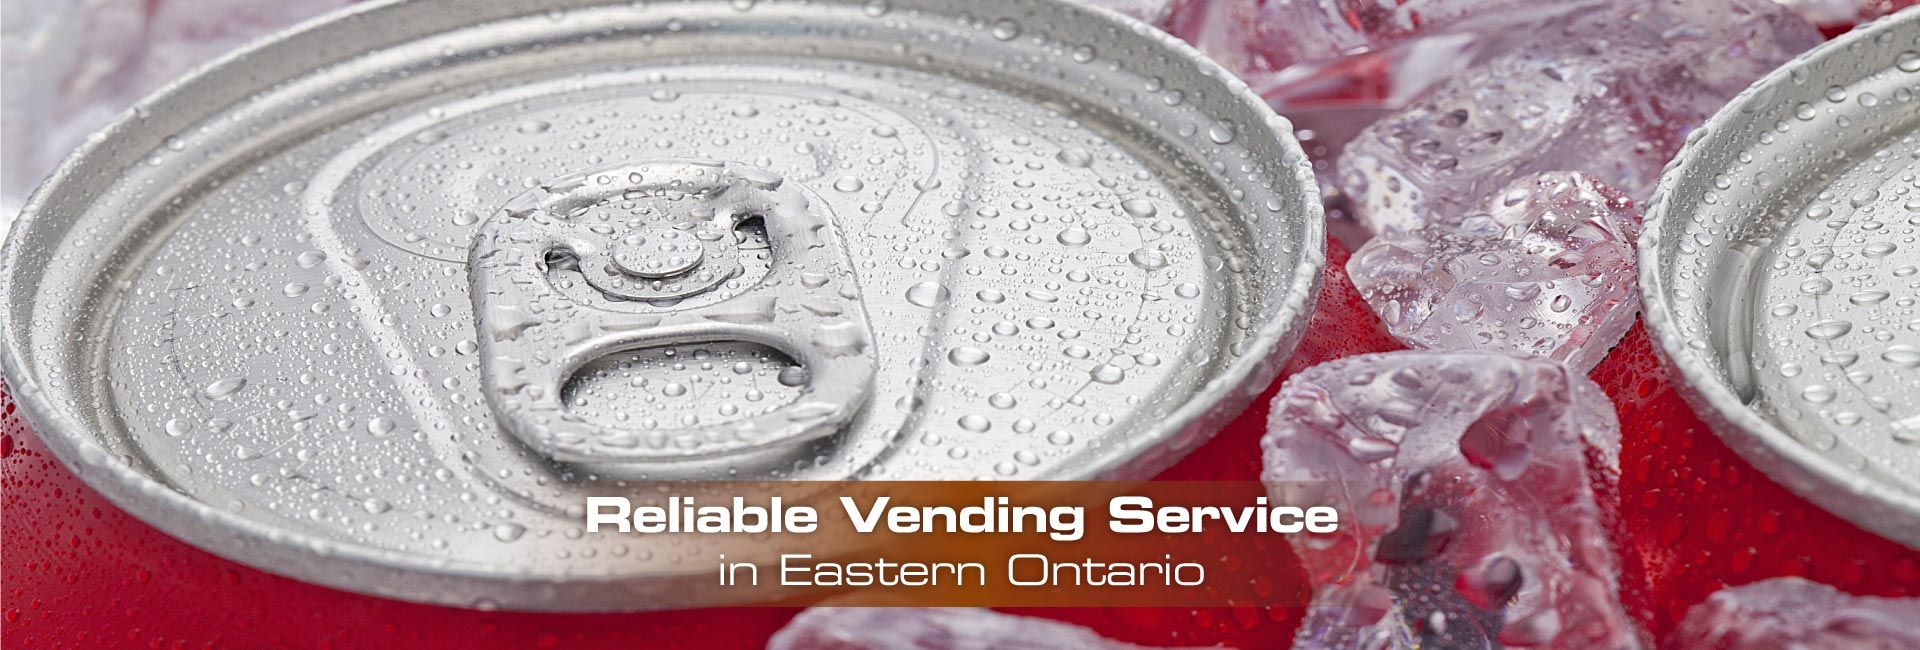 Reliable Vending Service in Eastern Ontario | Basket of ripe fruits on the table